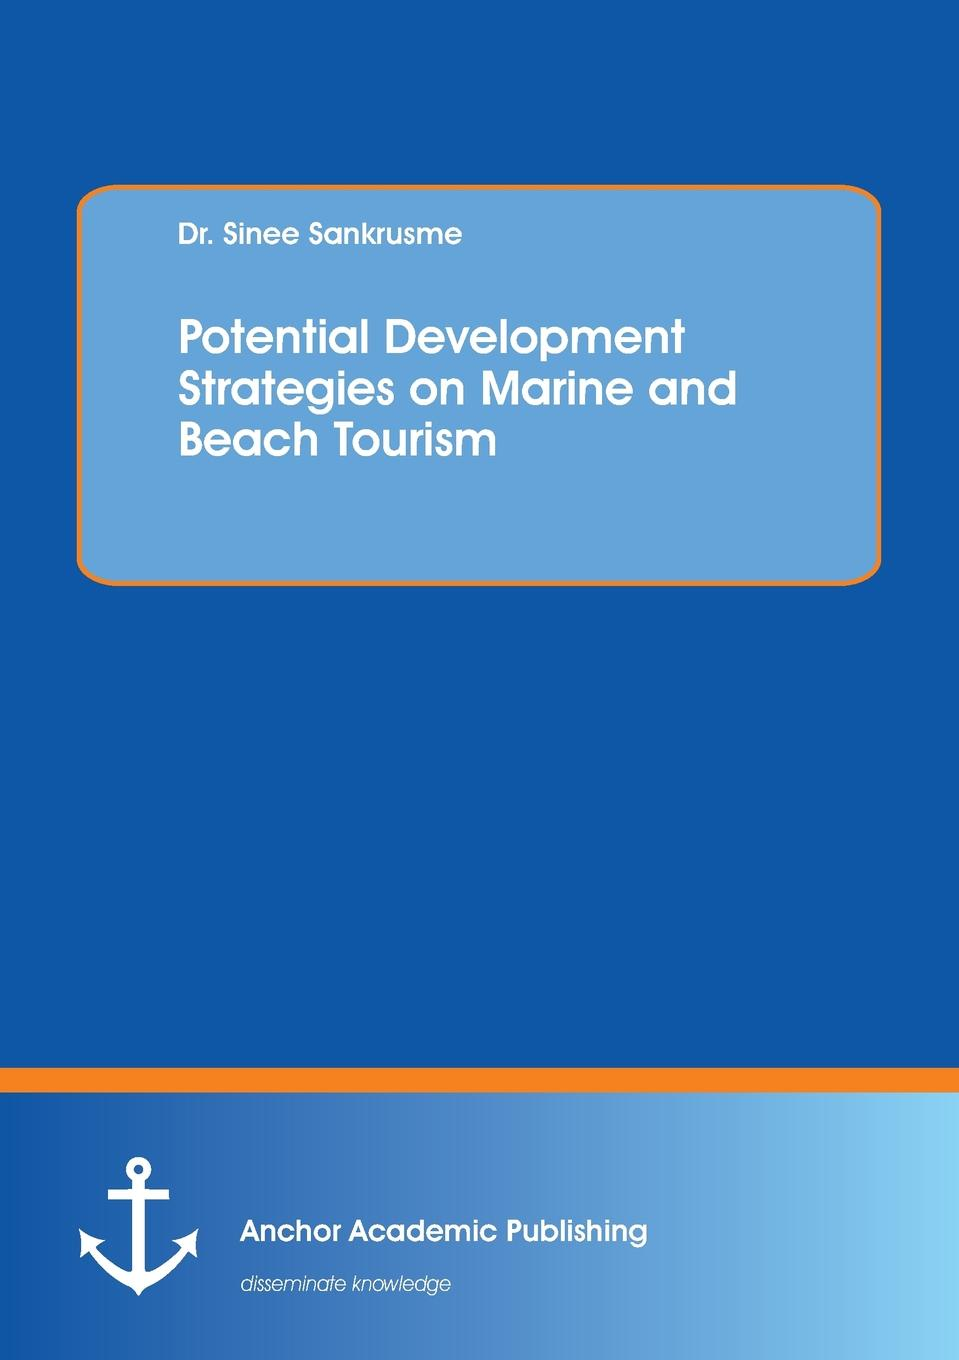 Sinee Sankrusme Potential Development Strategies on Marine and Beach Tourism